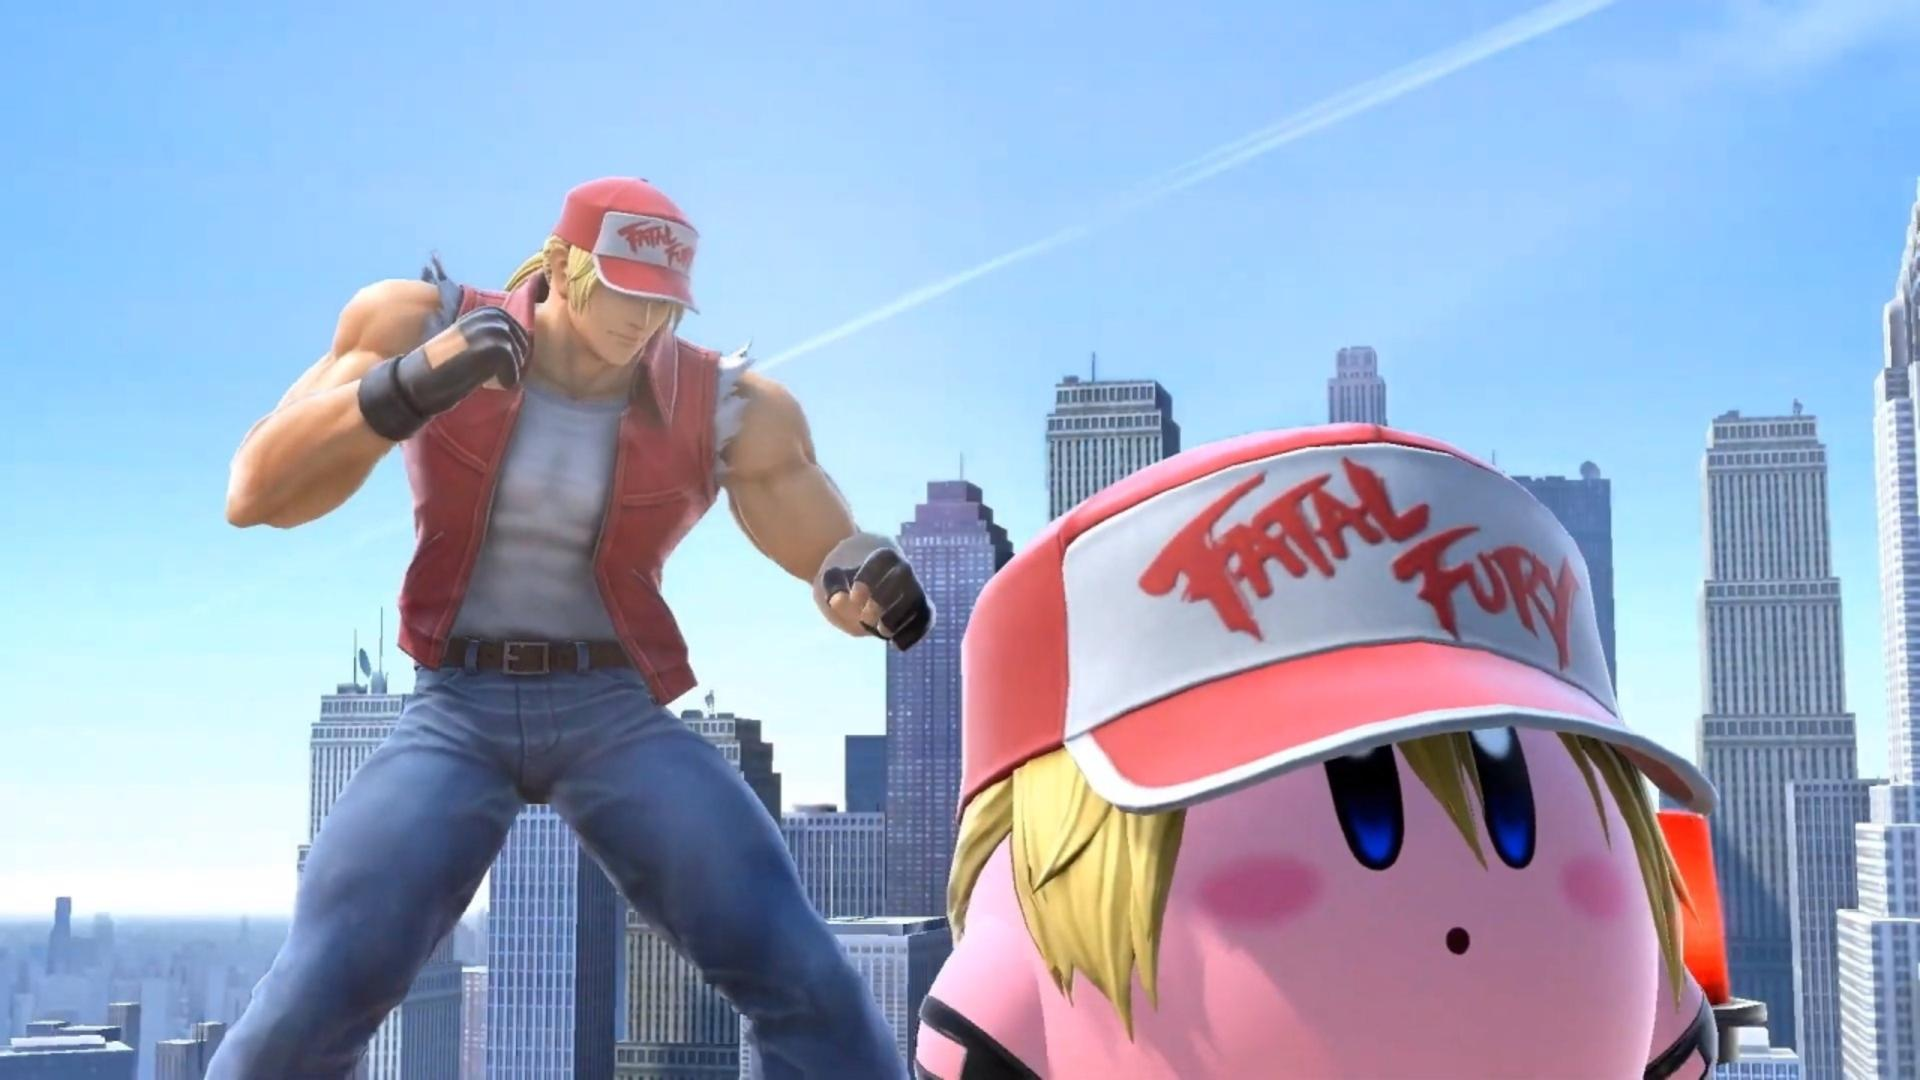 terry bogard and kirby bogard arrive in super smash bros ultimate today